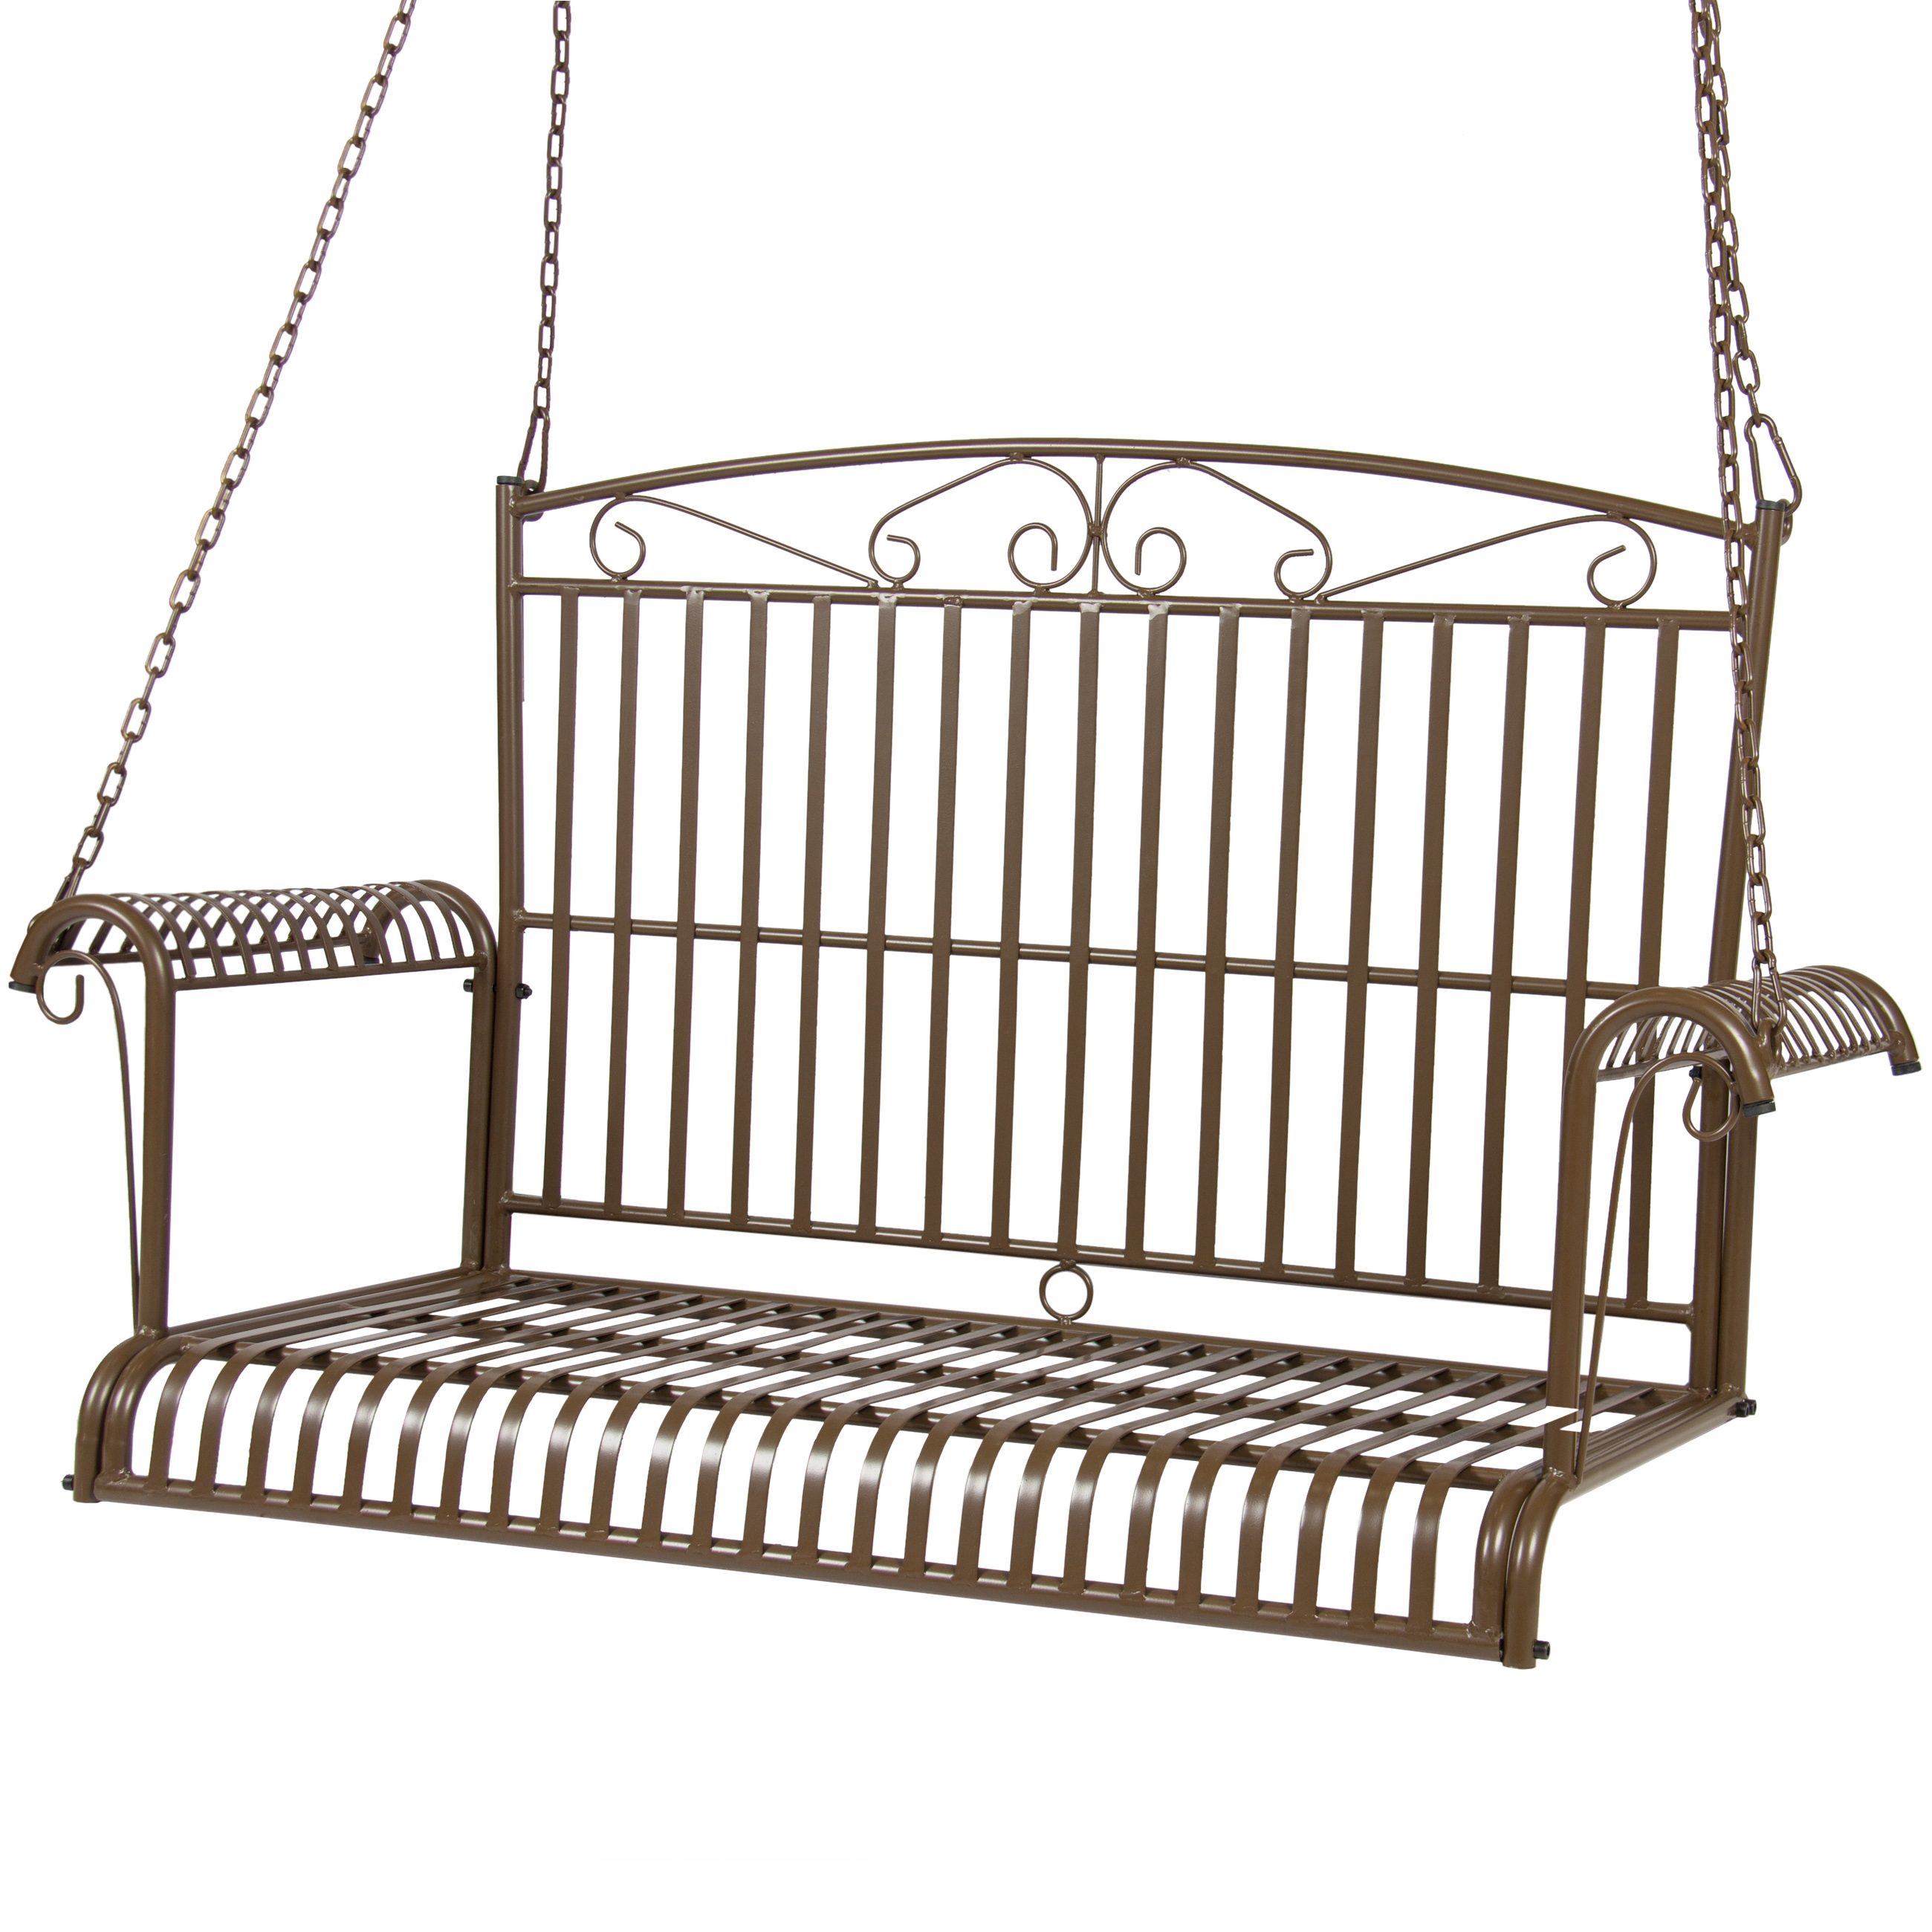 Best Choice Products BCP Iron Patio Hanging Porch Swing Chair Bench Seat Outdoor Furniture